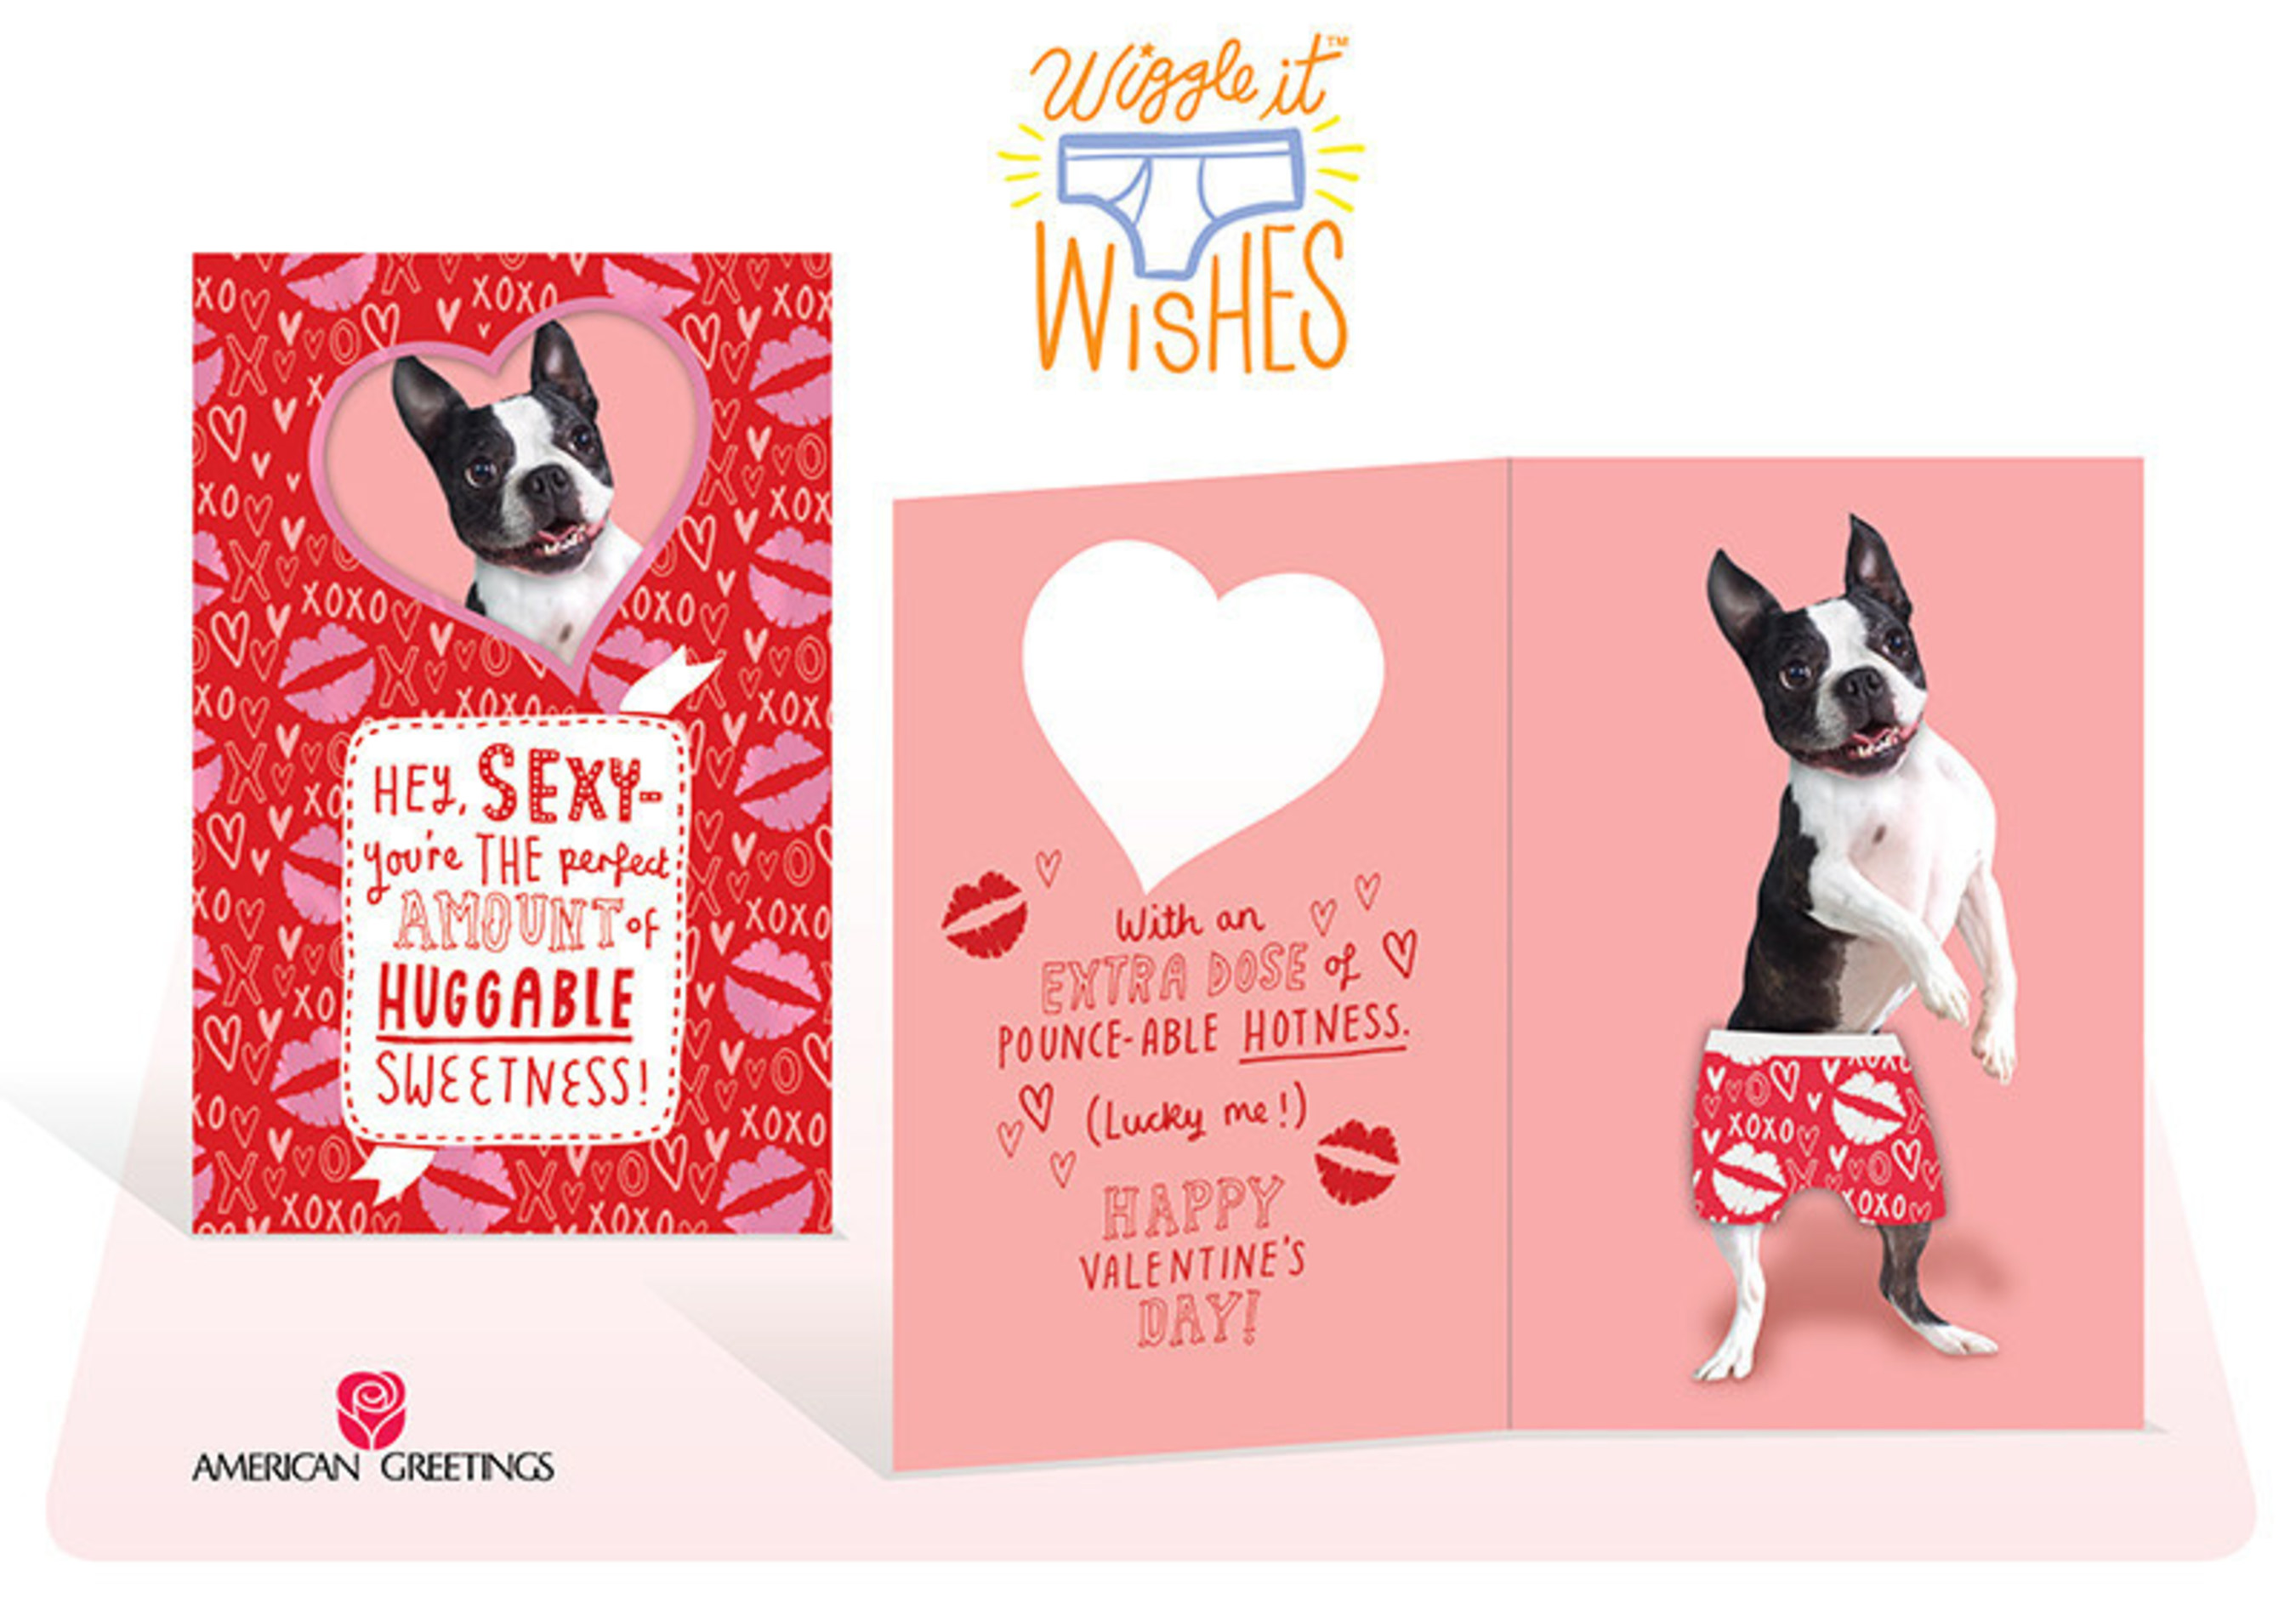 New Wiggle It Wishes From American Greetings Are The Perfect Fit